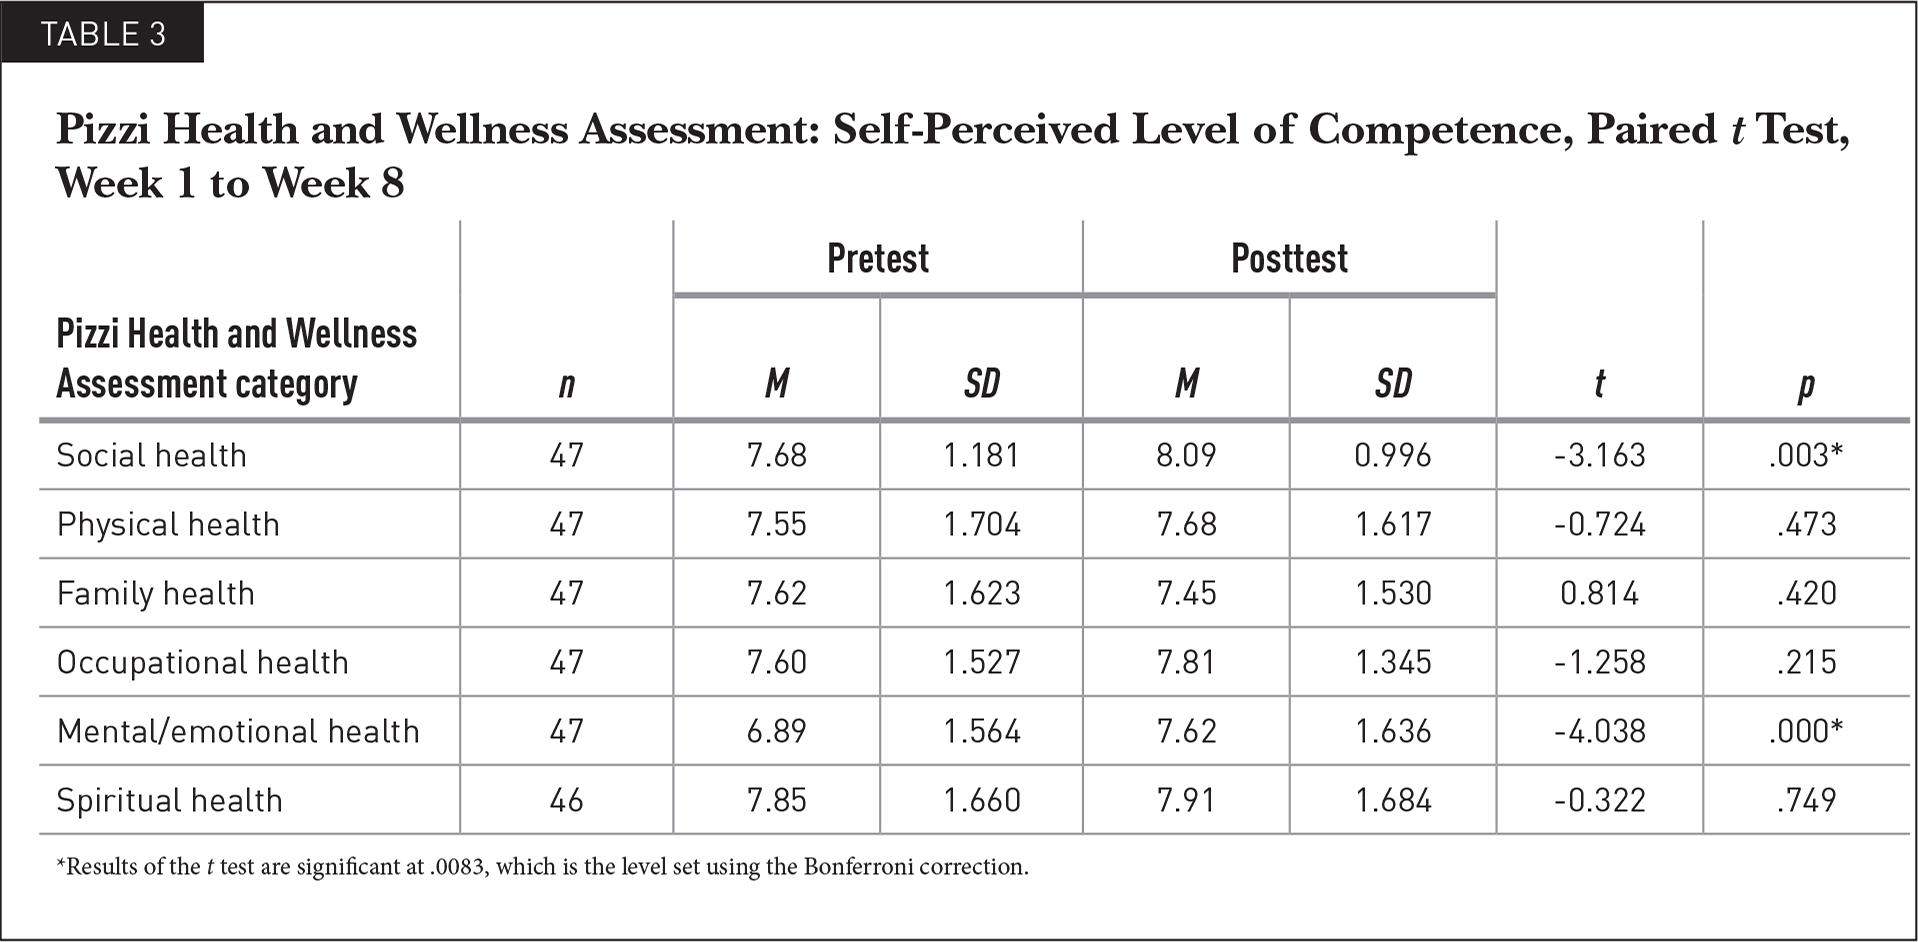 Pizzi Health and Wellness Assessment: Self-Perceived Level of Competence, Paired t Test, Week 1 to Week 8